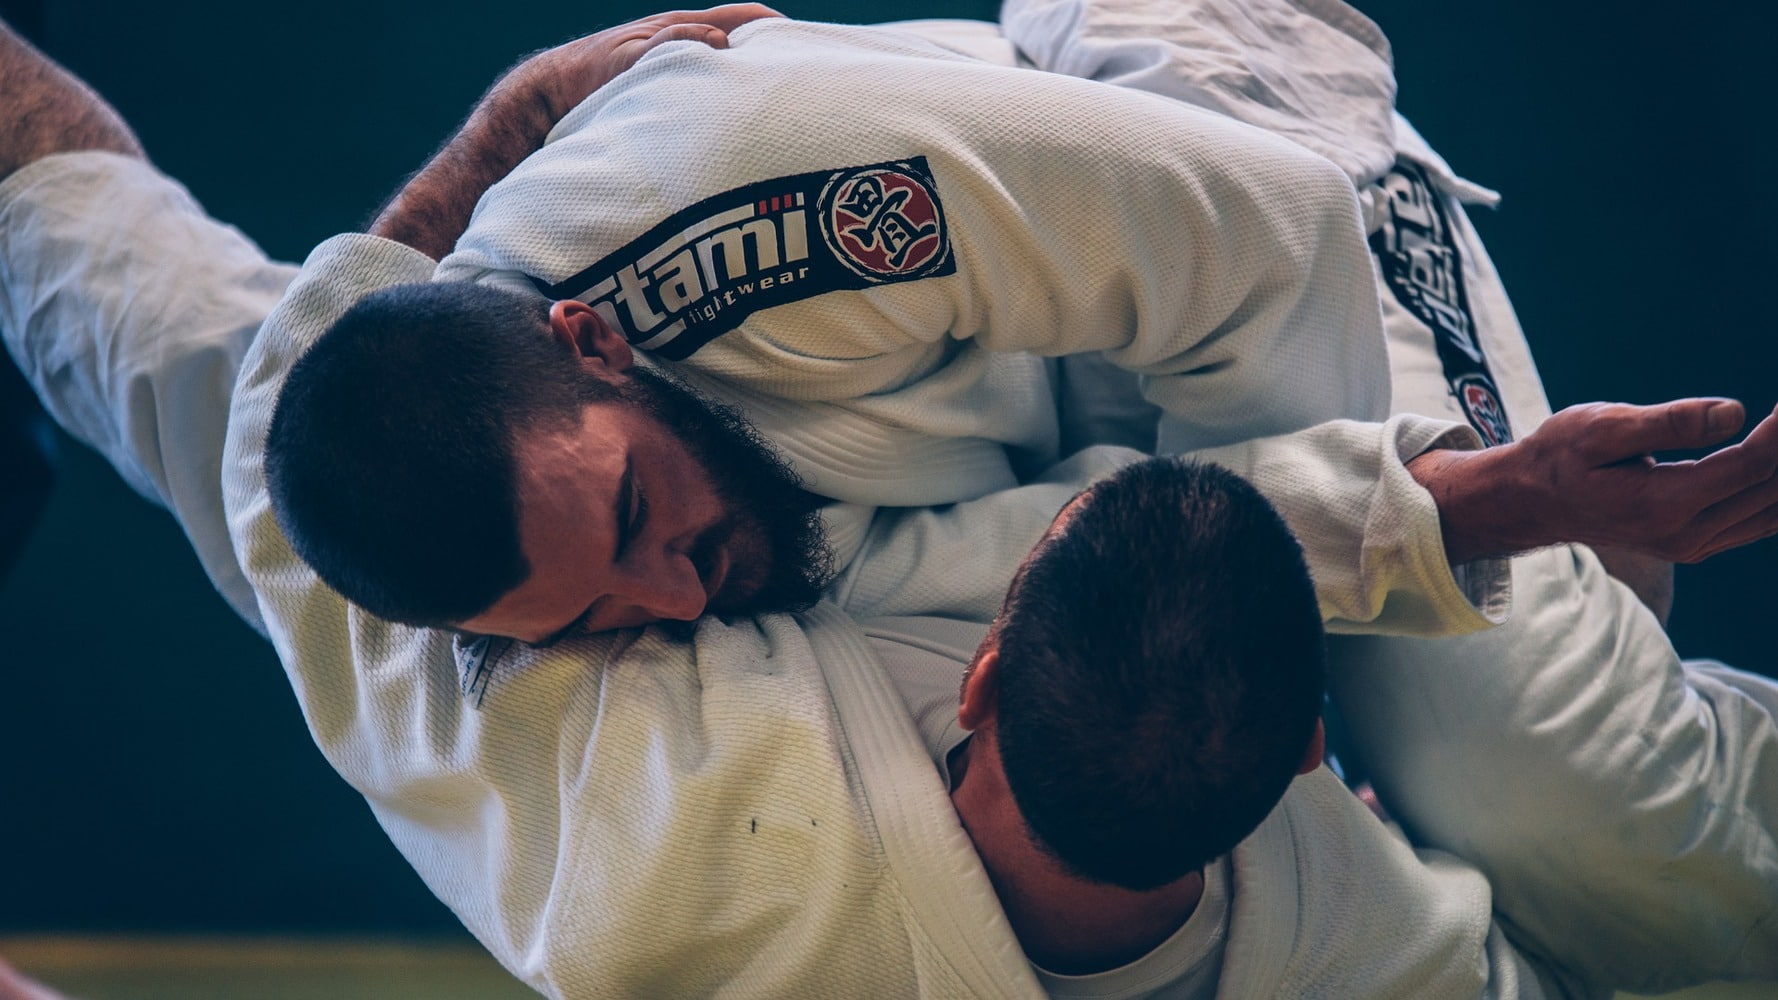 BJJ fighters in action